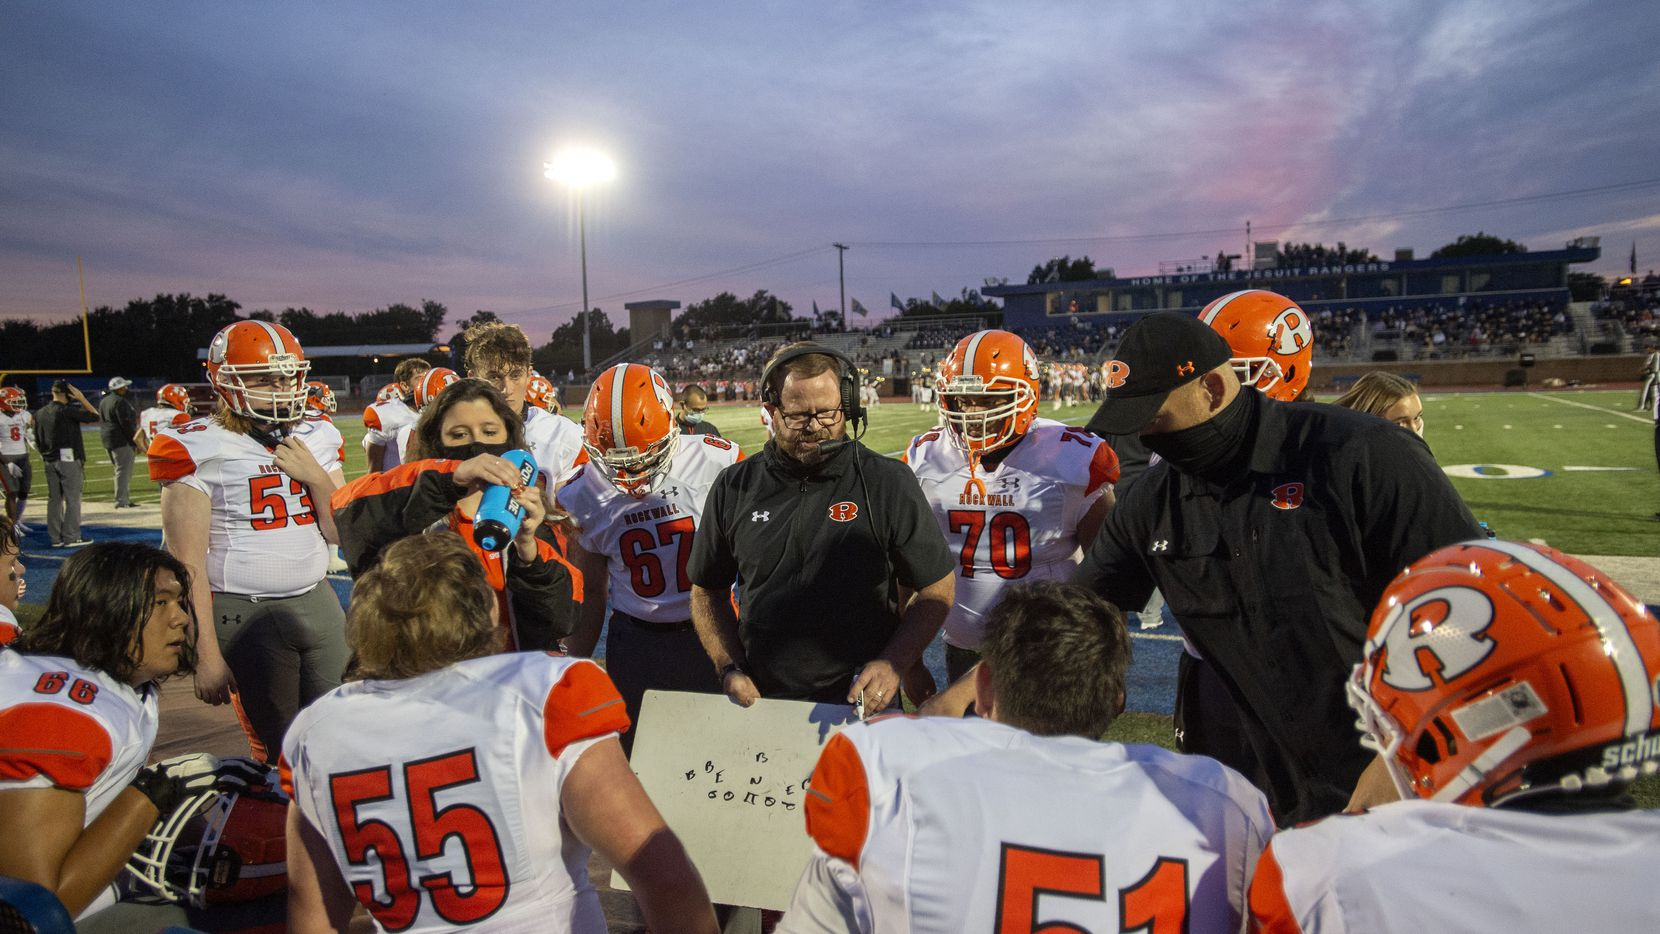 Rockwall offensive line coach Rusty Brackett, center, instructs his players on the sidelines in the first half of a high school football game against Jesuit on Friday, October 2, 2020 at Postell Stadium in Dallas.